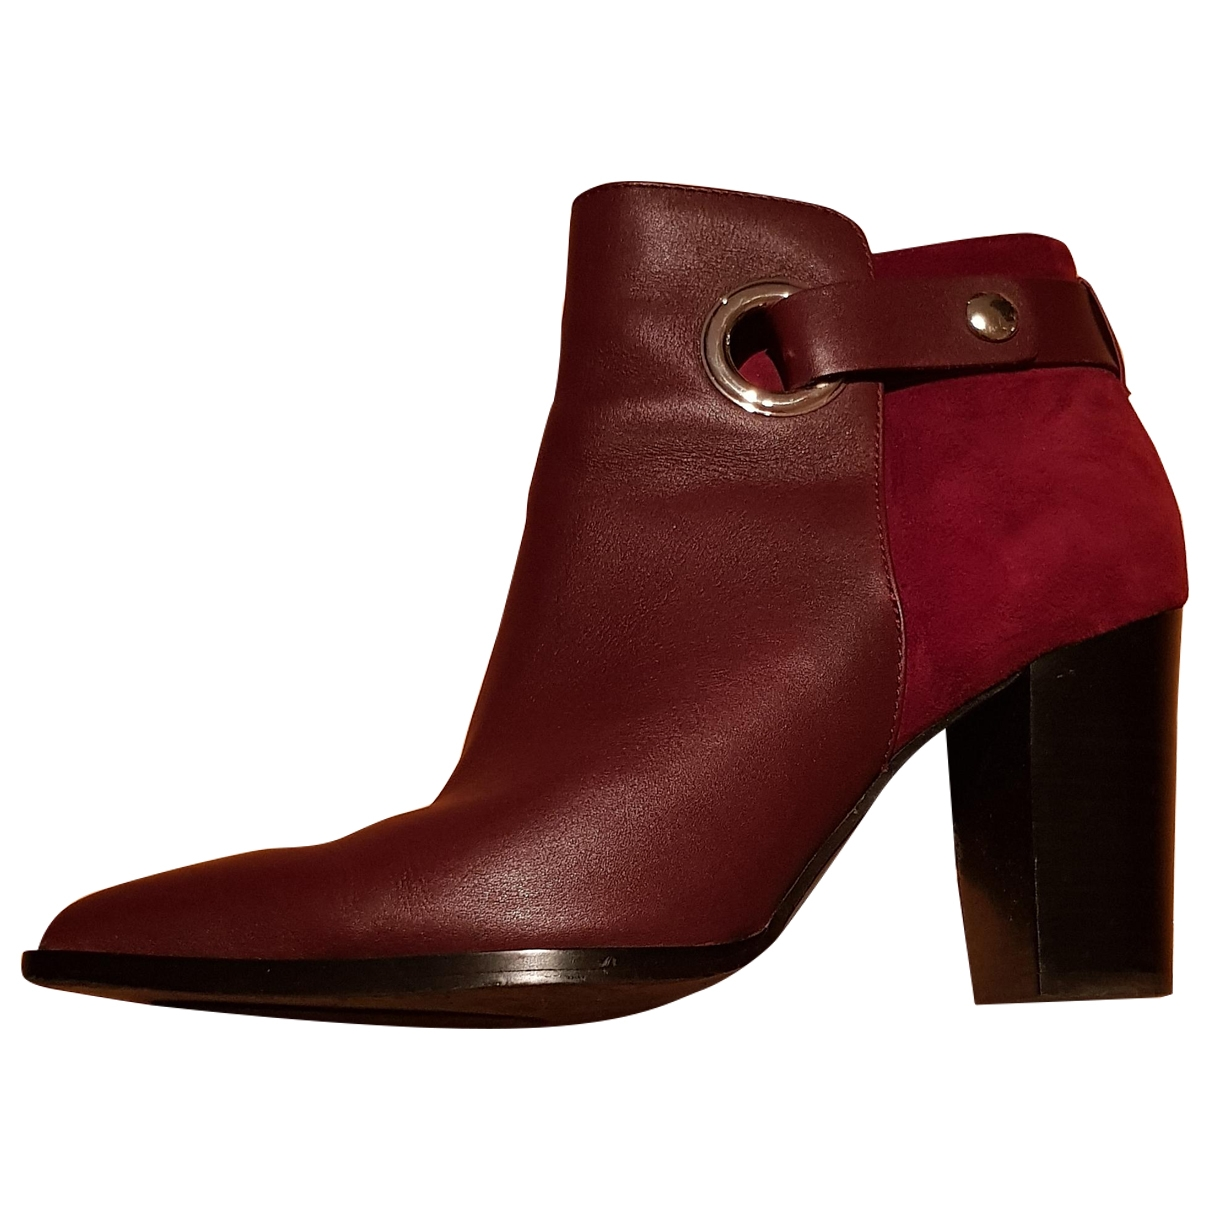 & Stories \N Burgundy Leather Ankle boots for Women 39 EU